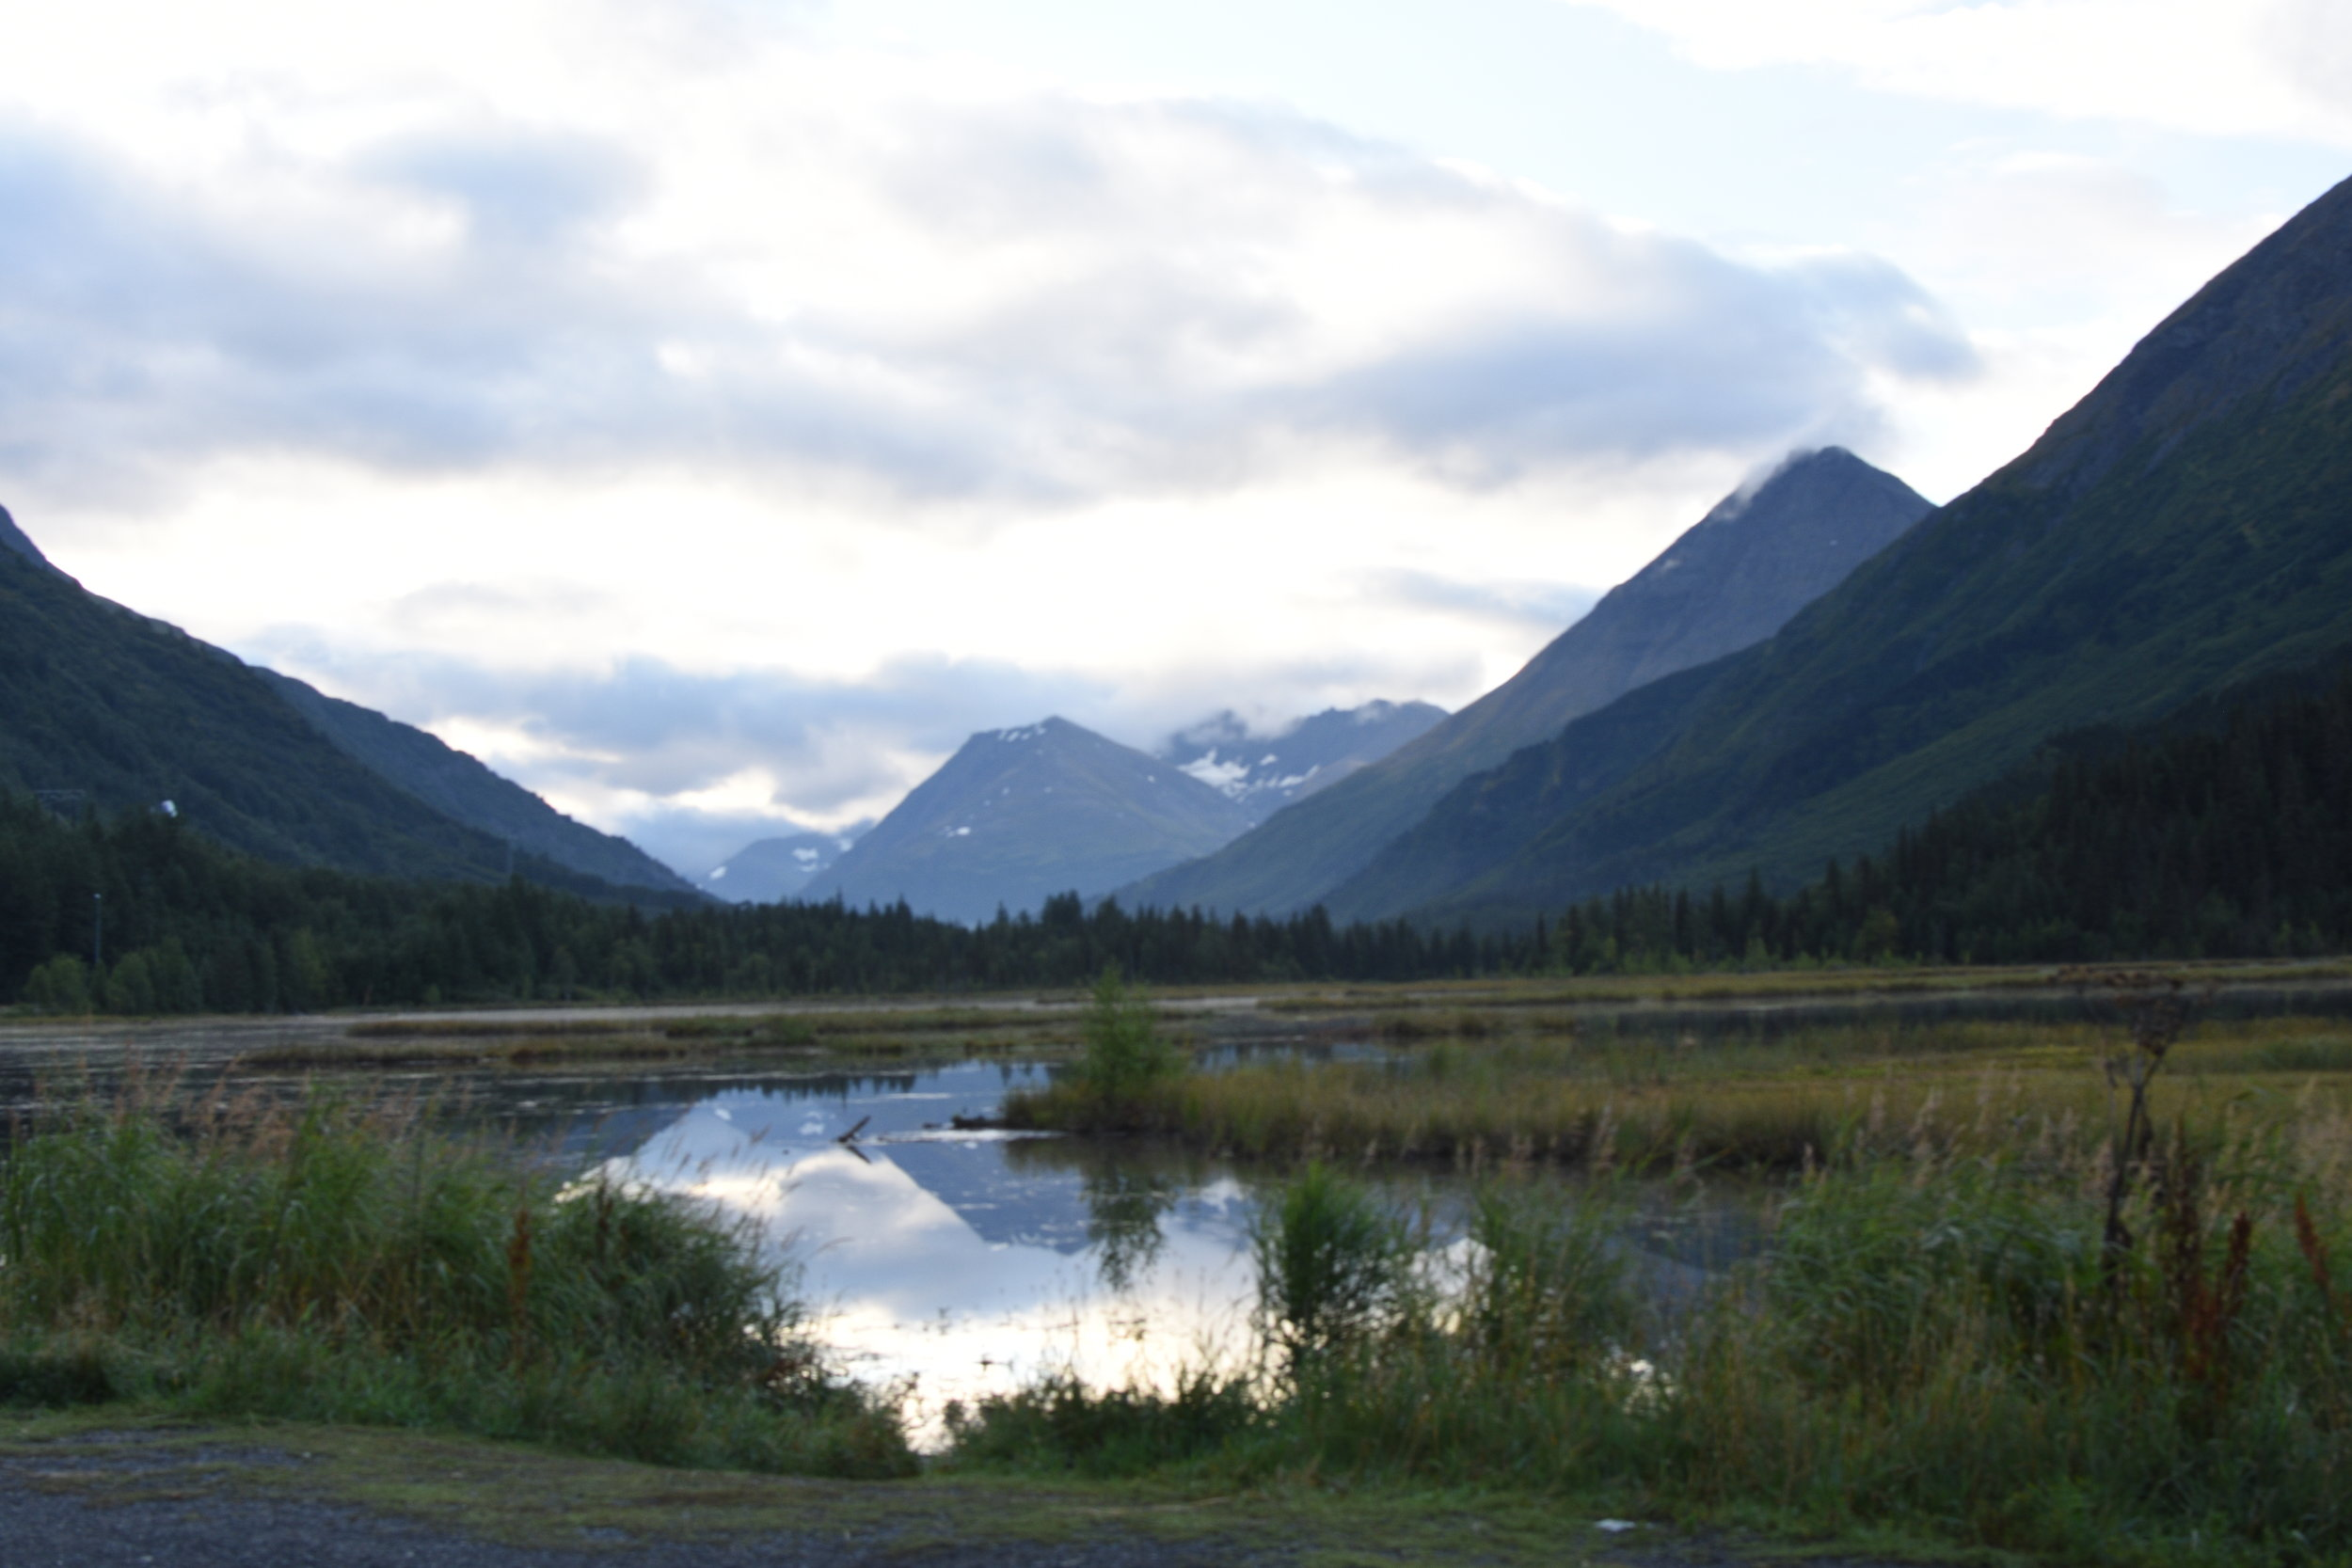 Tern Lake, where the Sterling Highway and Seward Highway meet. Go straight to Seward, AK or turn right towards    Cooper Landing, AK.